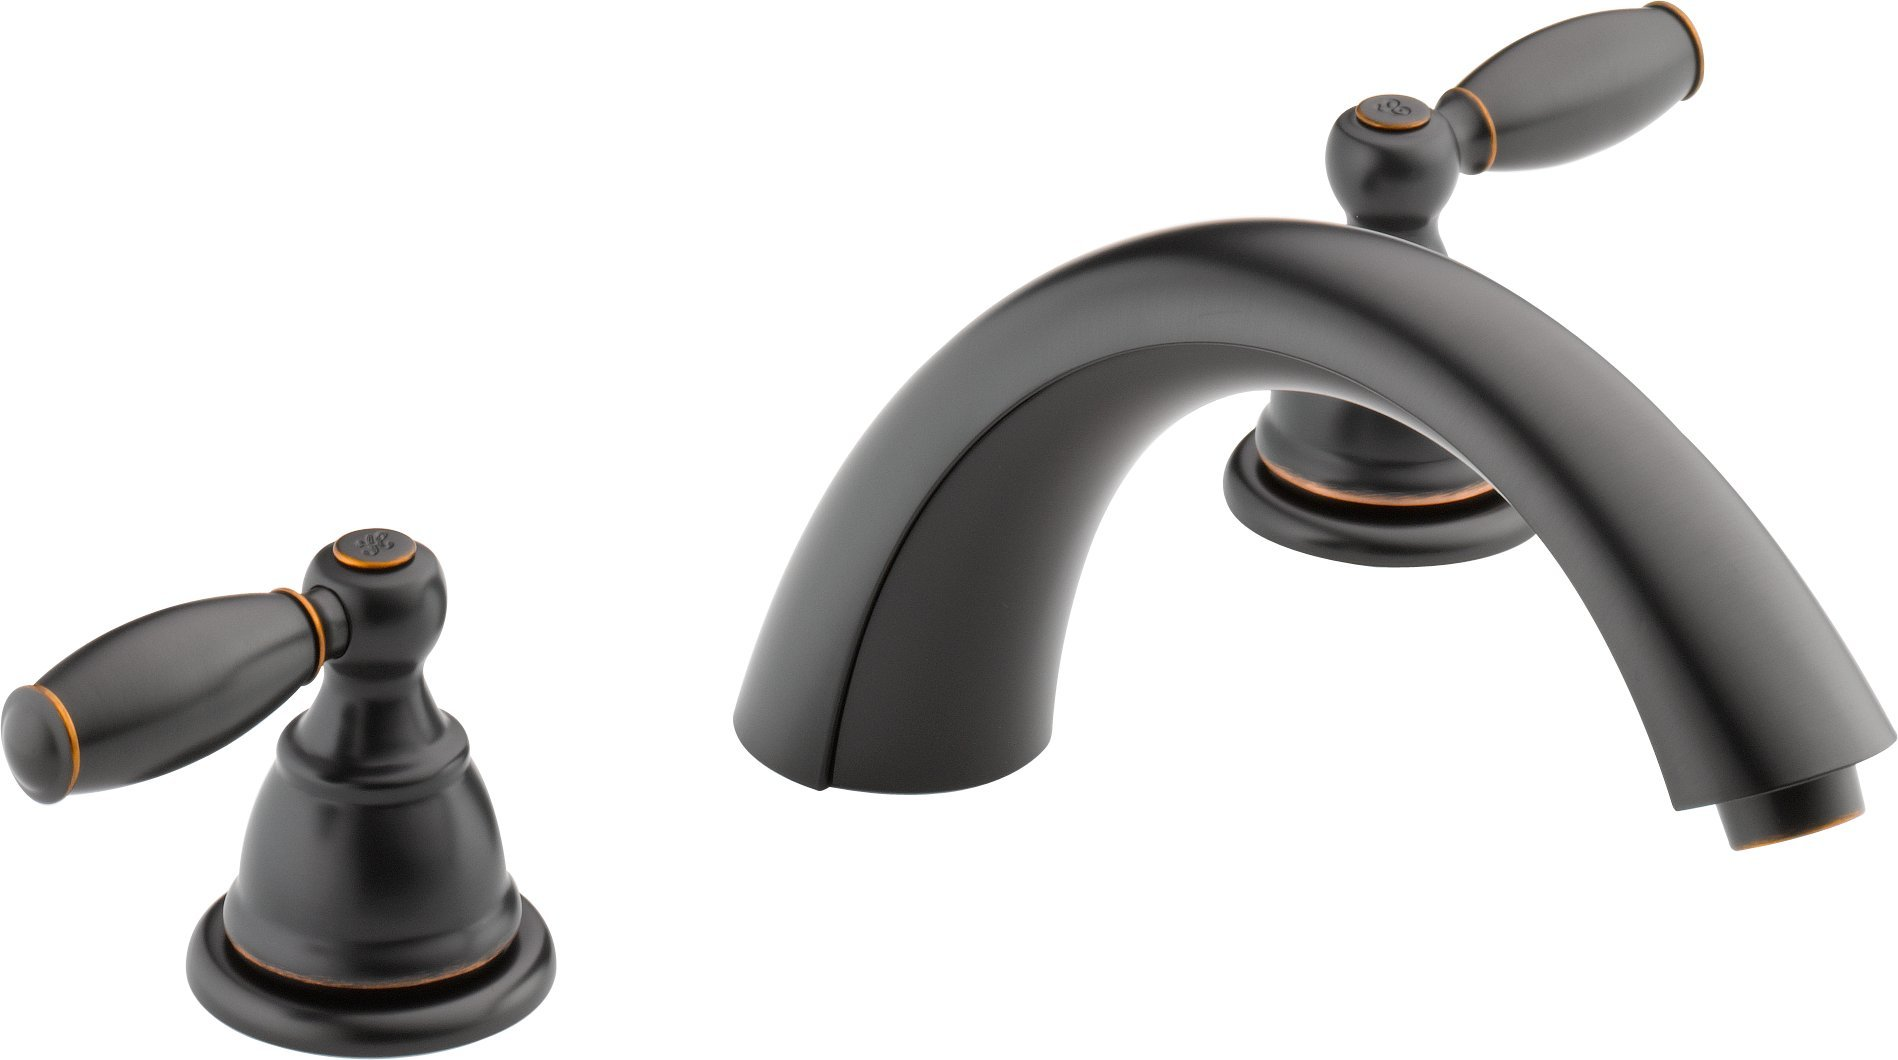 Peerless PTT298696-OB Apex Two Handle Roman Tub Trim, Oil Rubbed Bronze (R2700 Valve Not Included) by DELTA FAUCET